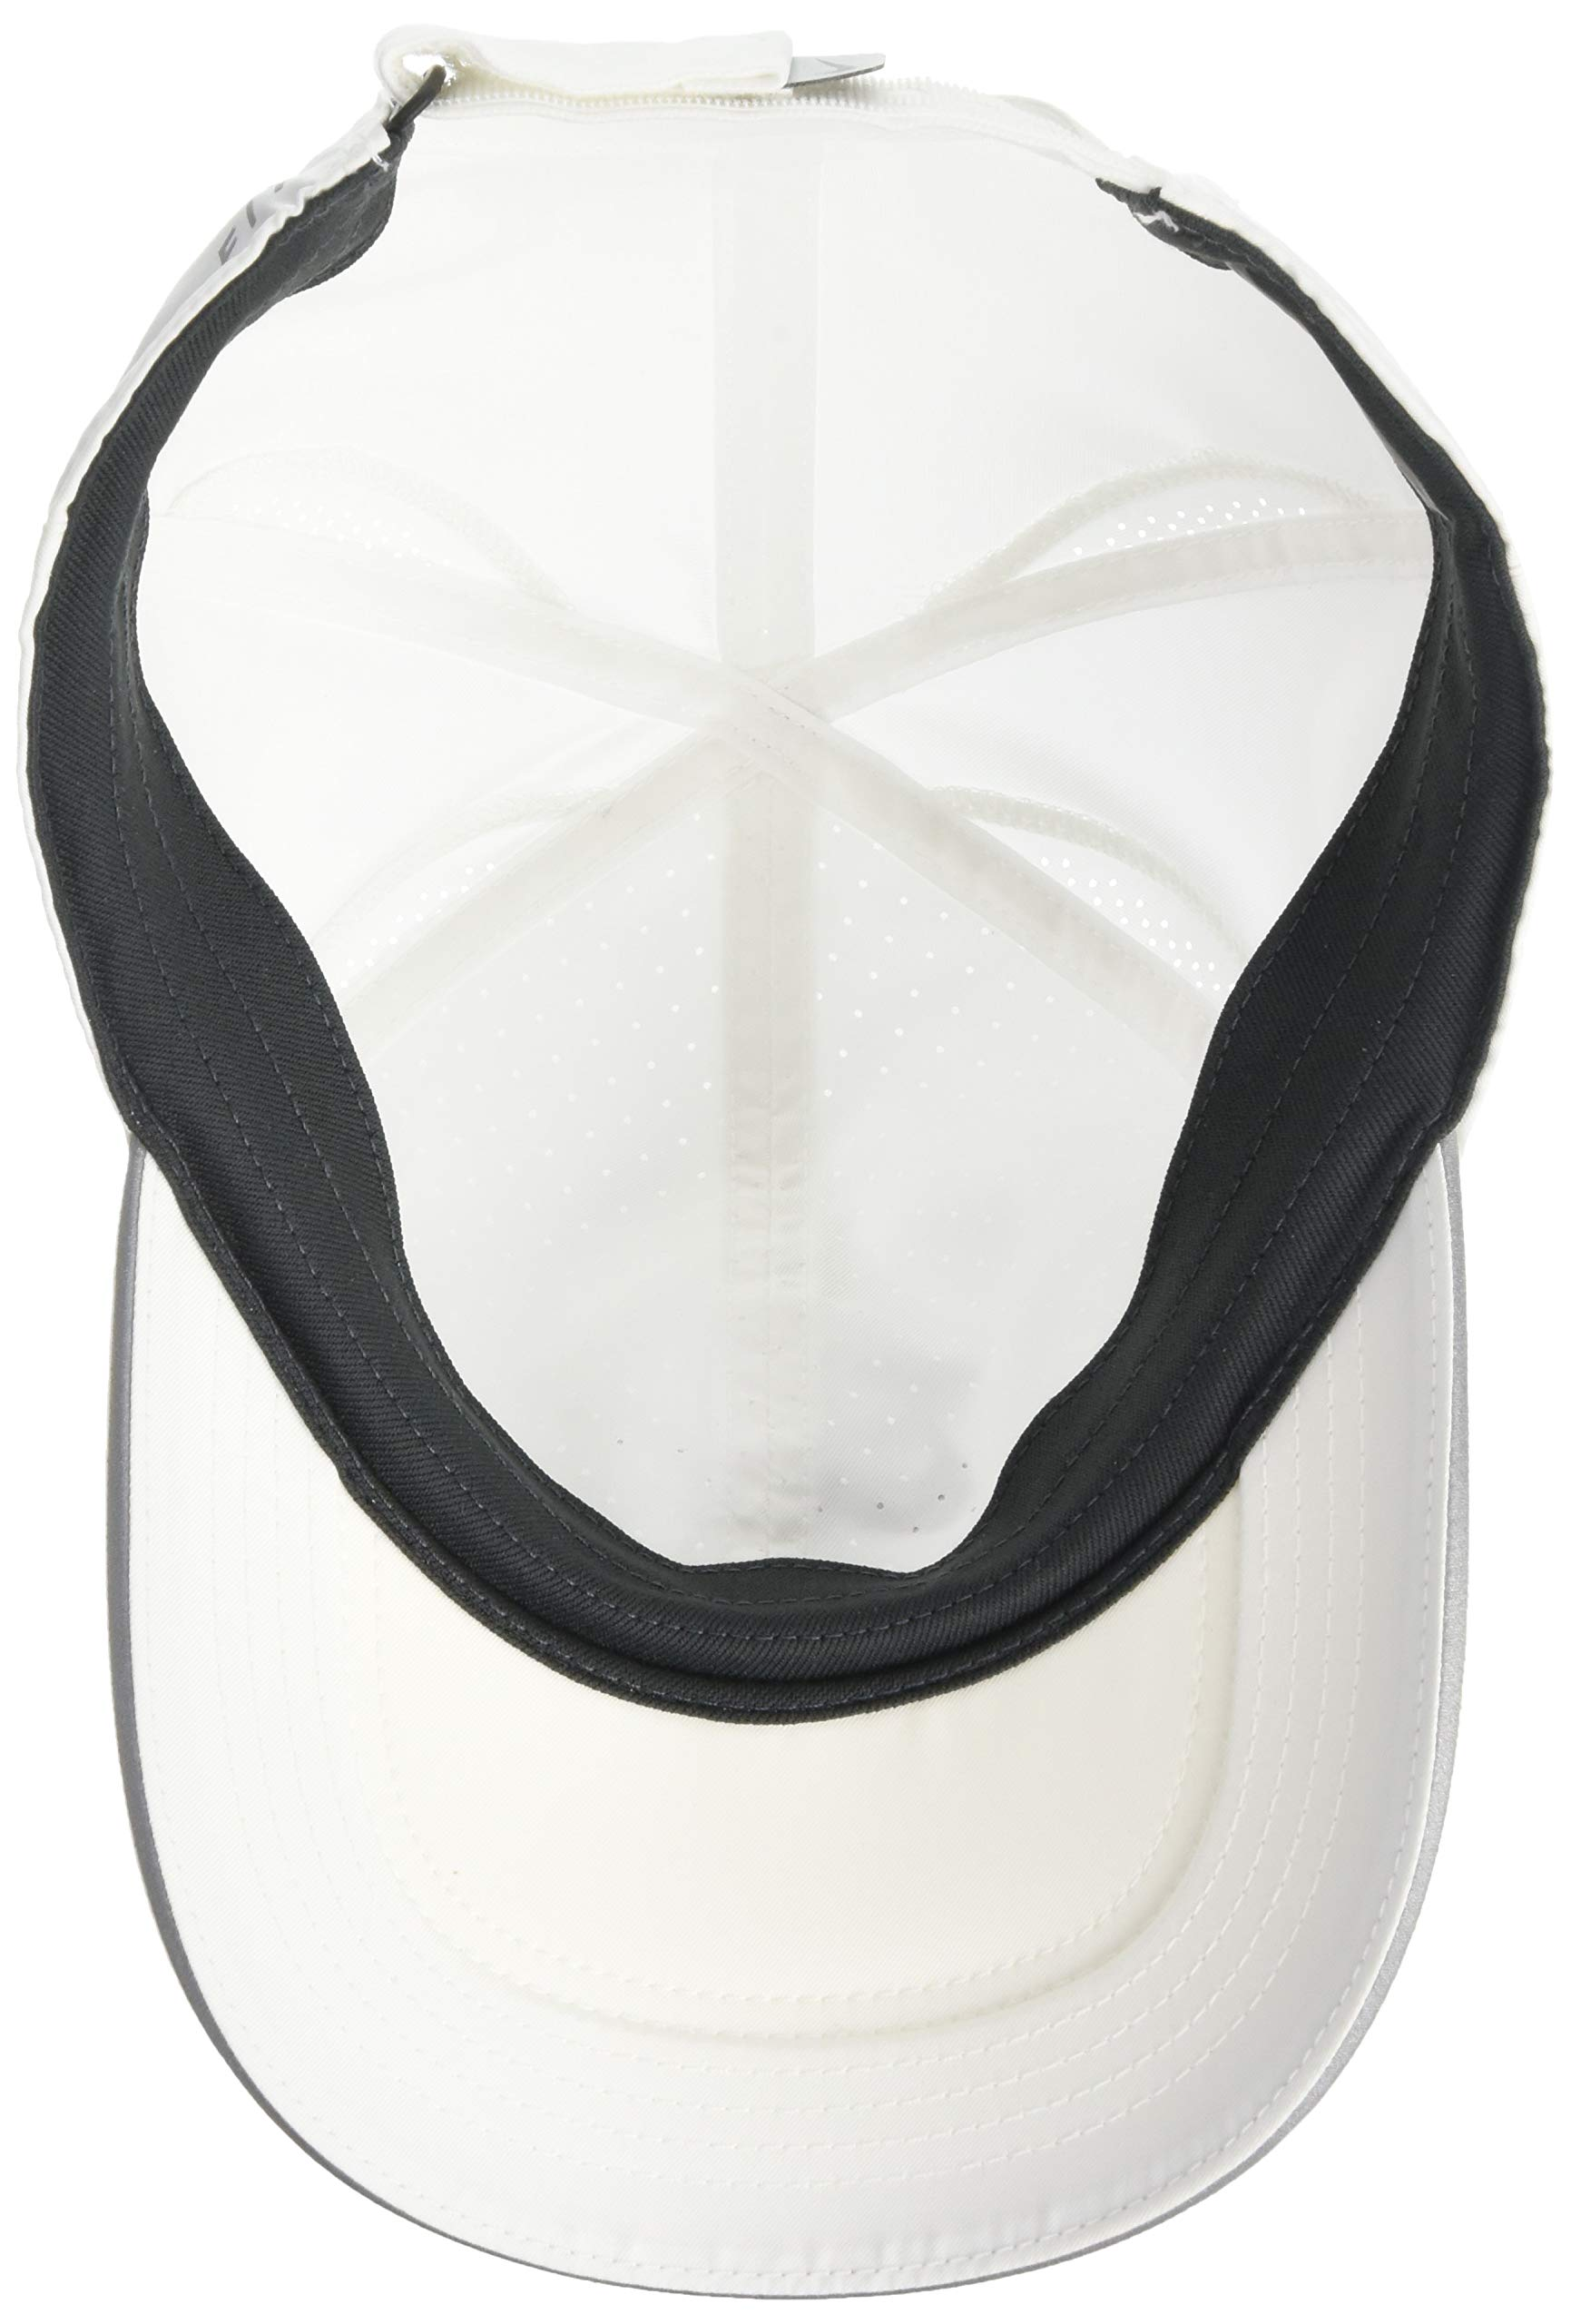 Nike Featherlight Running Cap, White, Misc by Nike (Image #3)